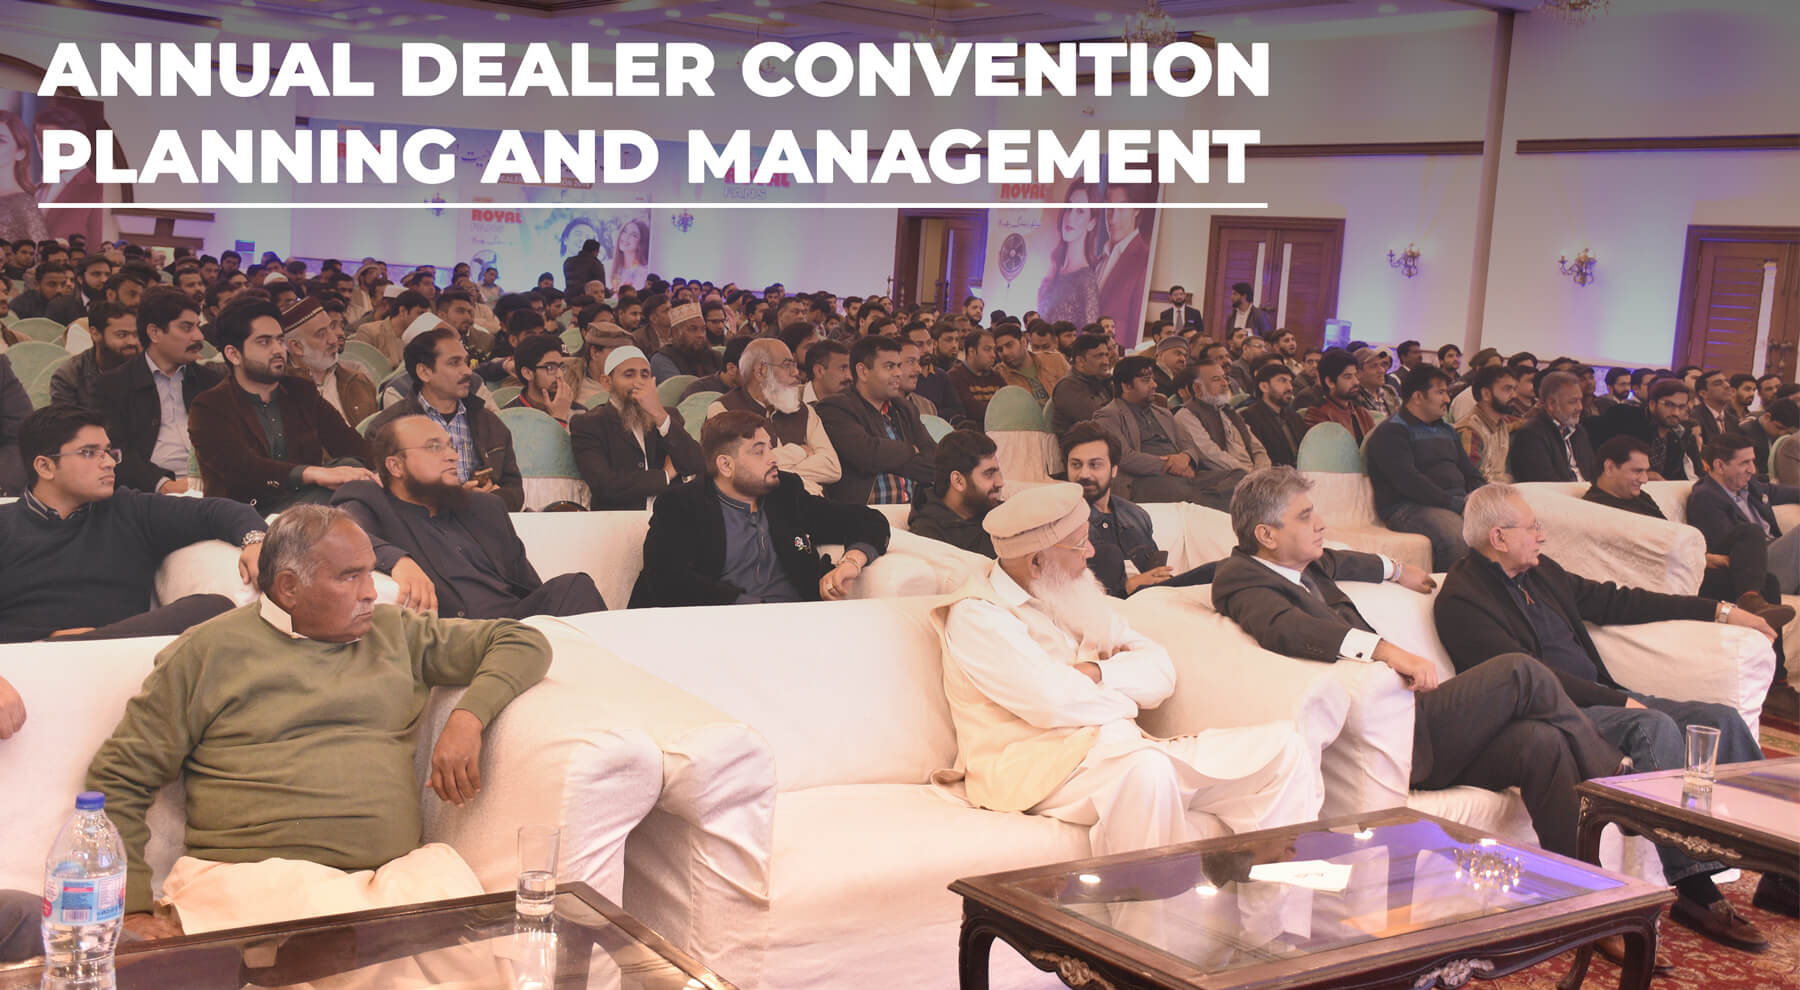 CONVENTION EVENT